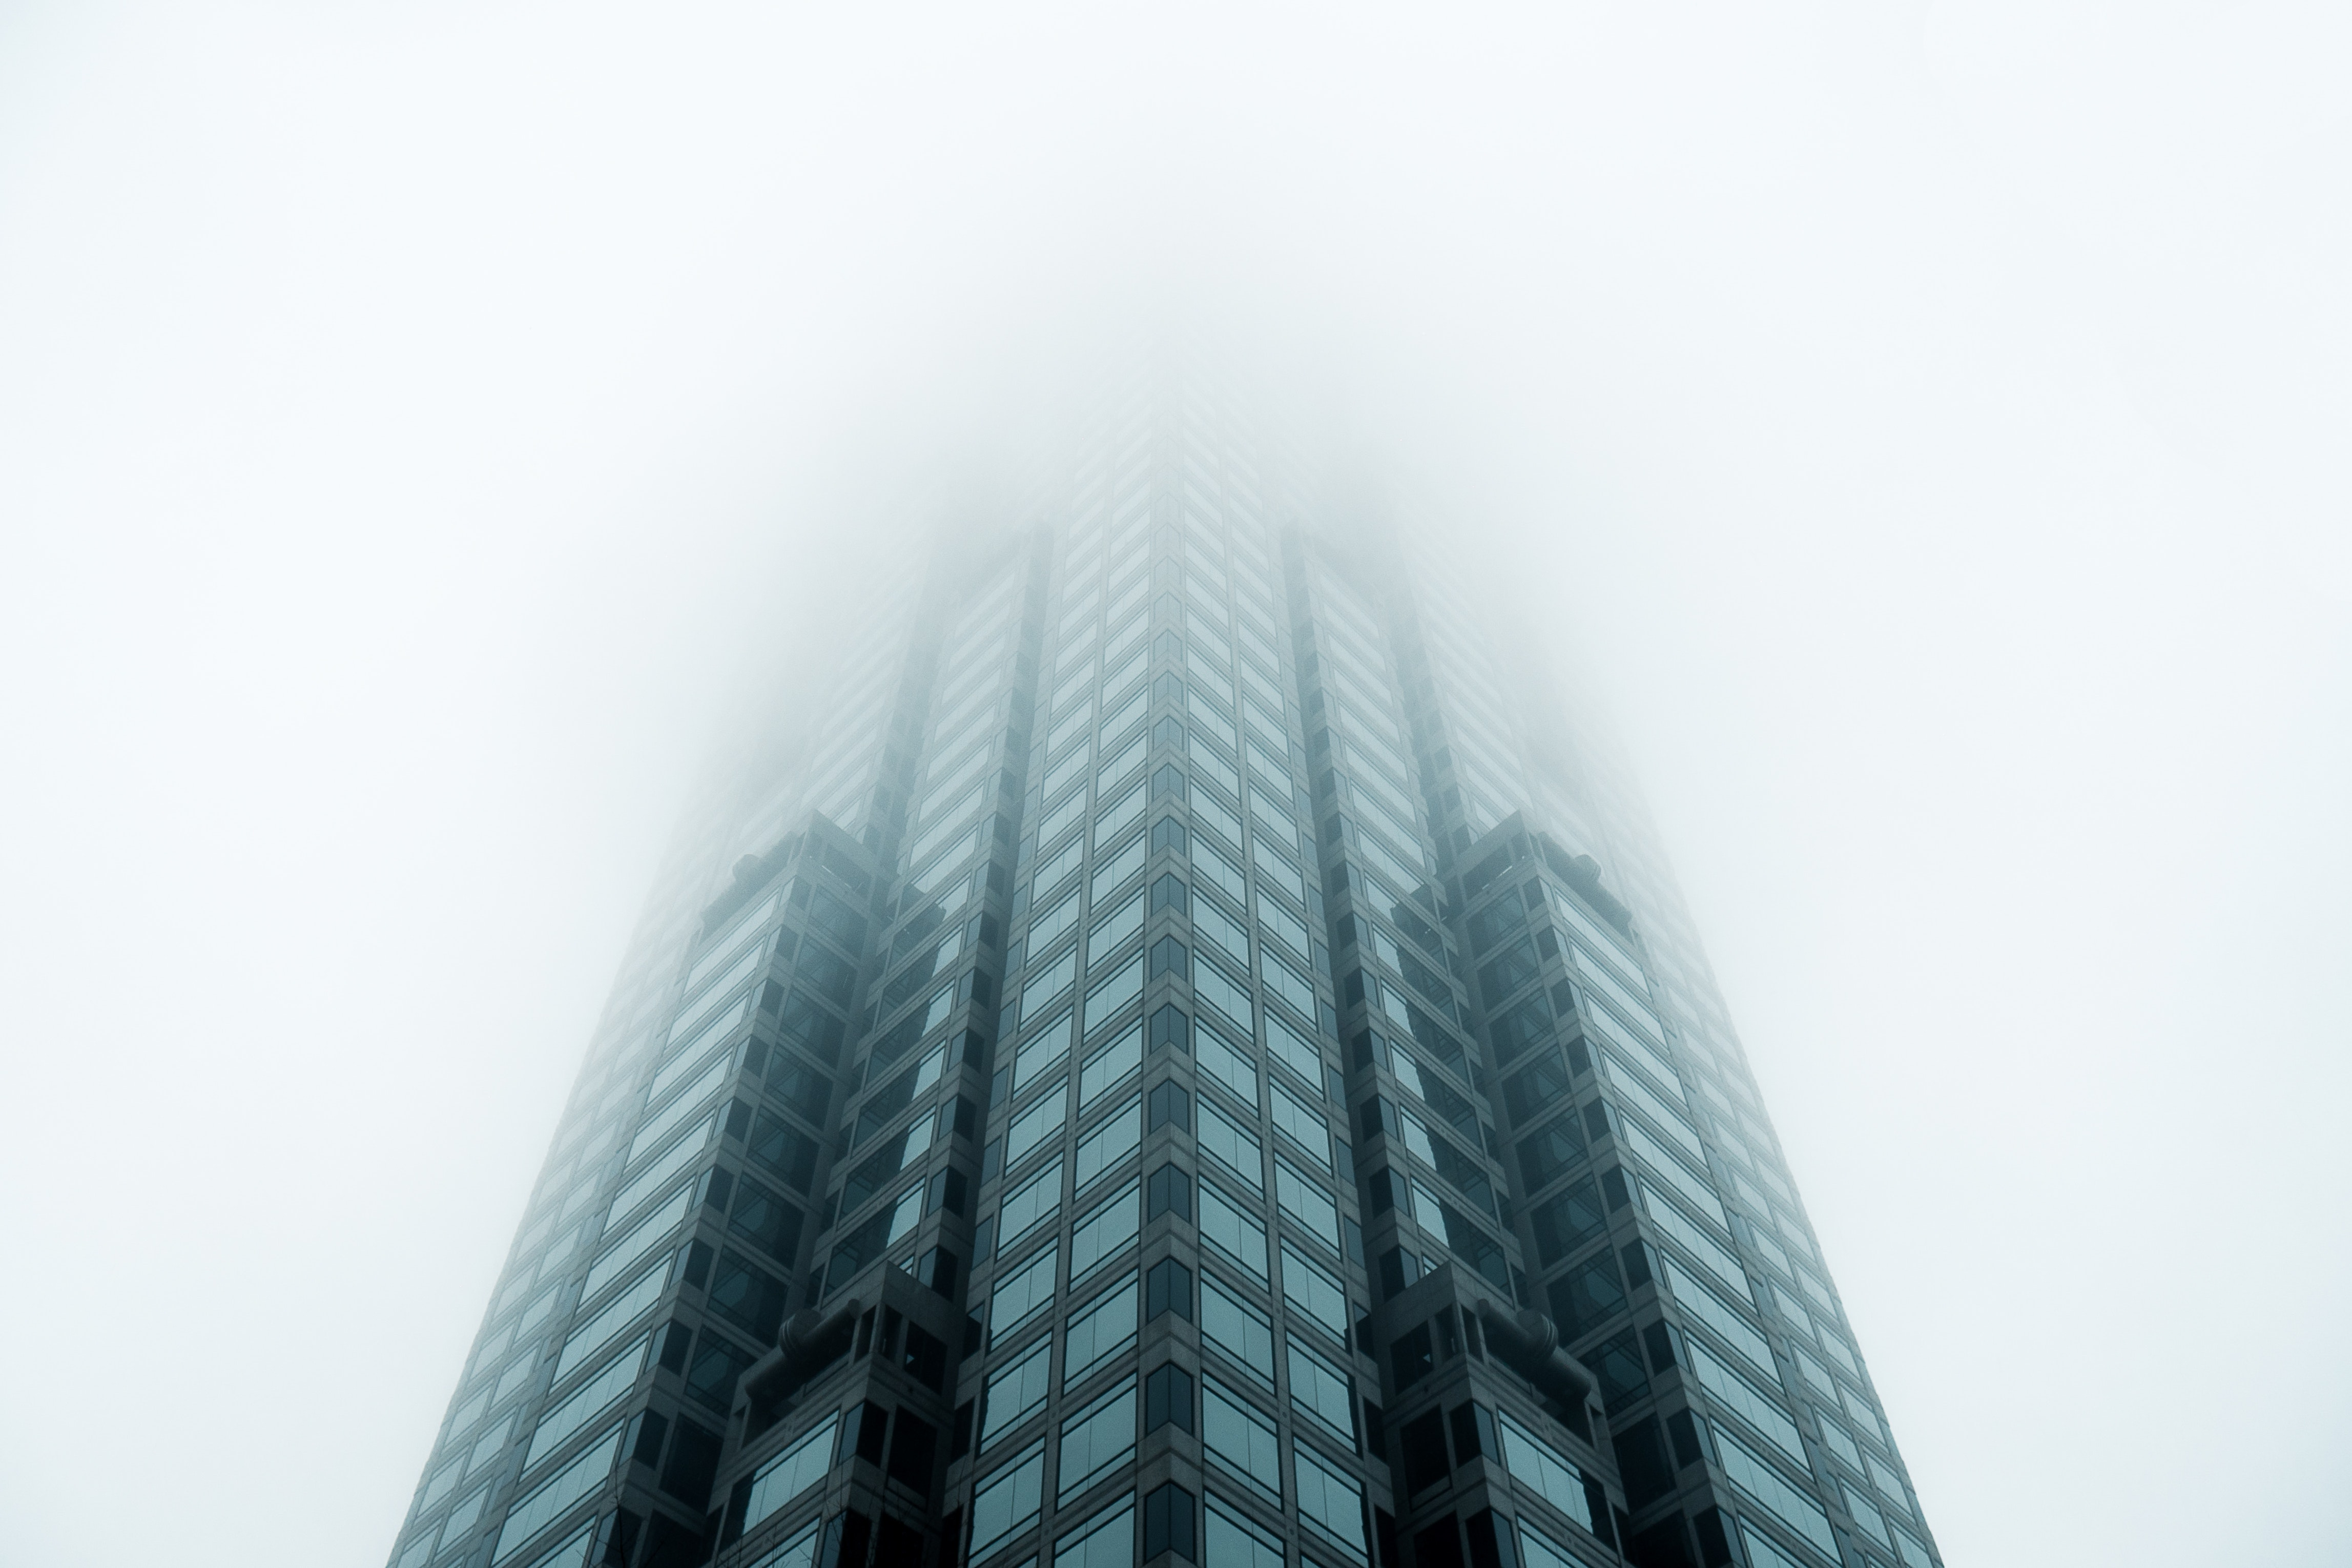 Low-angle photo of a high rise building standing in a fog